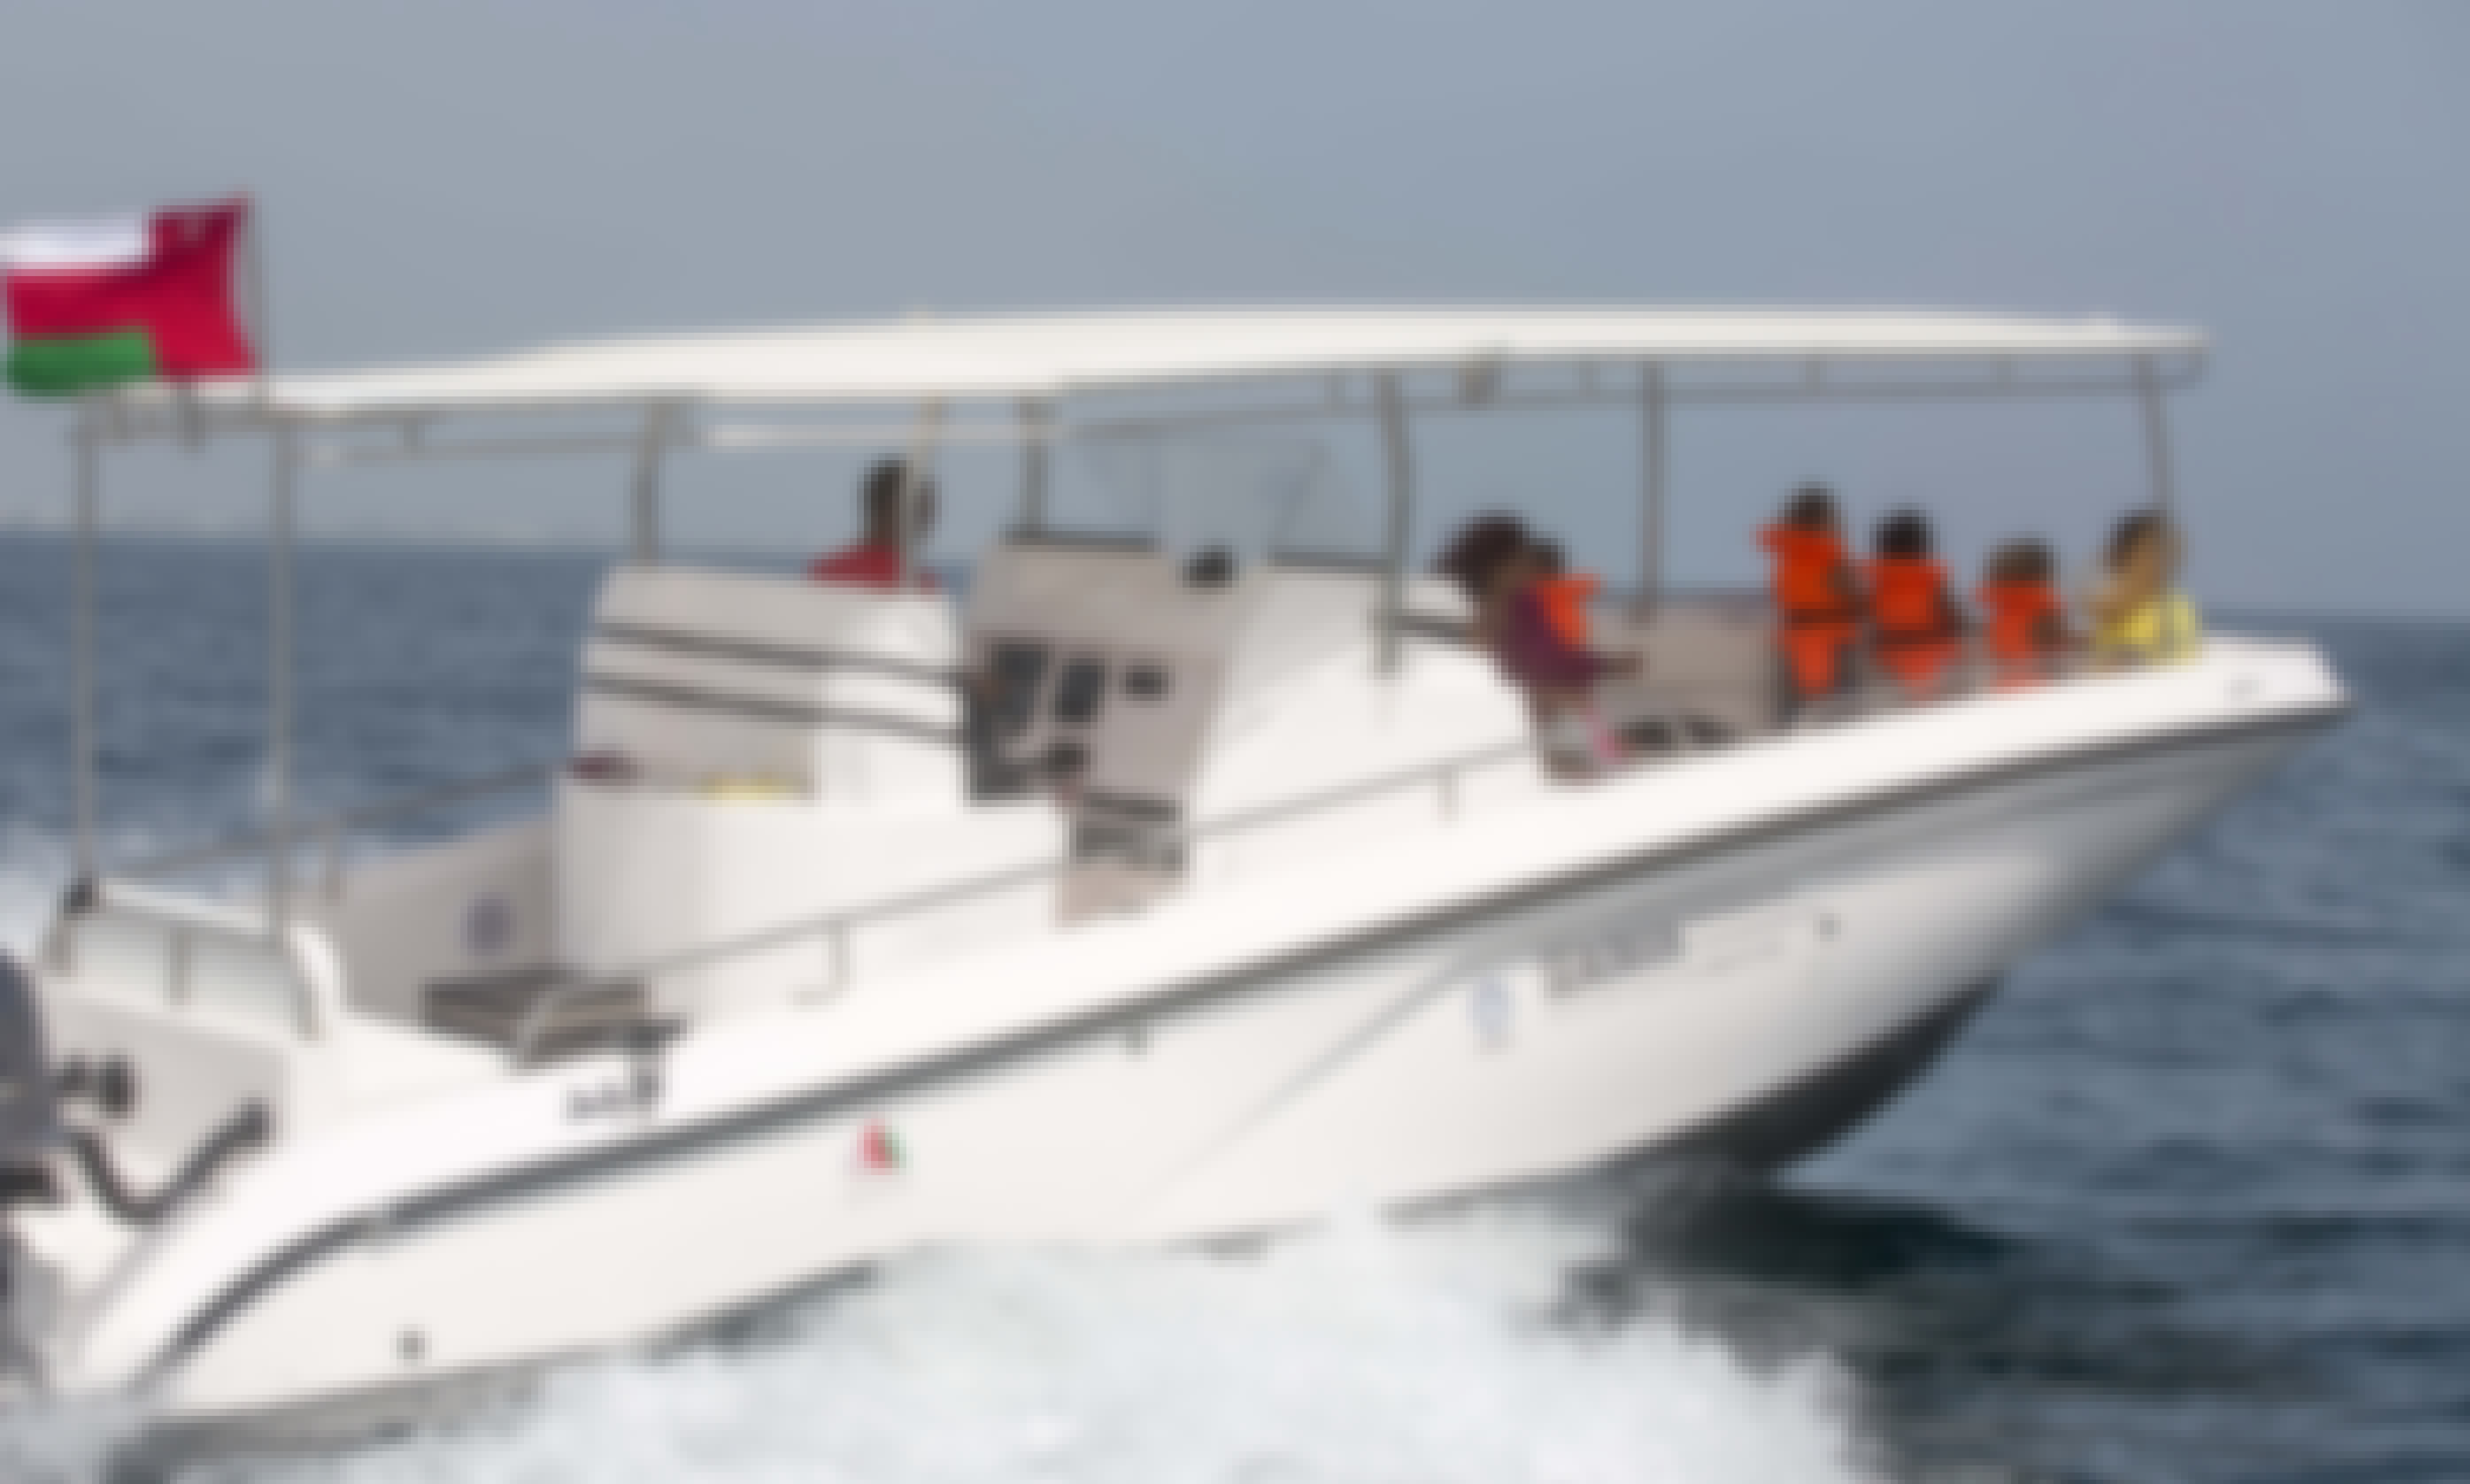 SEA OMAN 32ft Powerboat with skipper